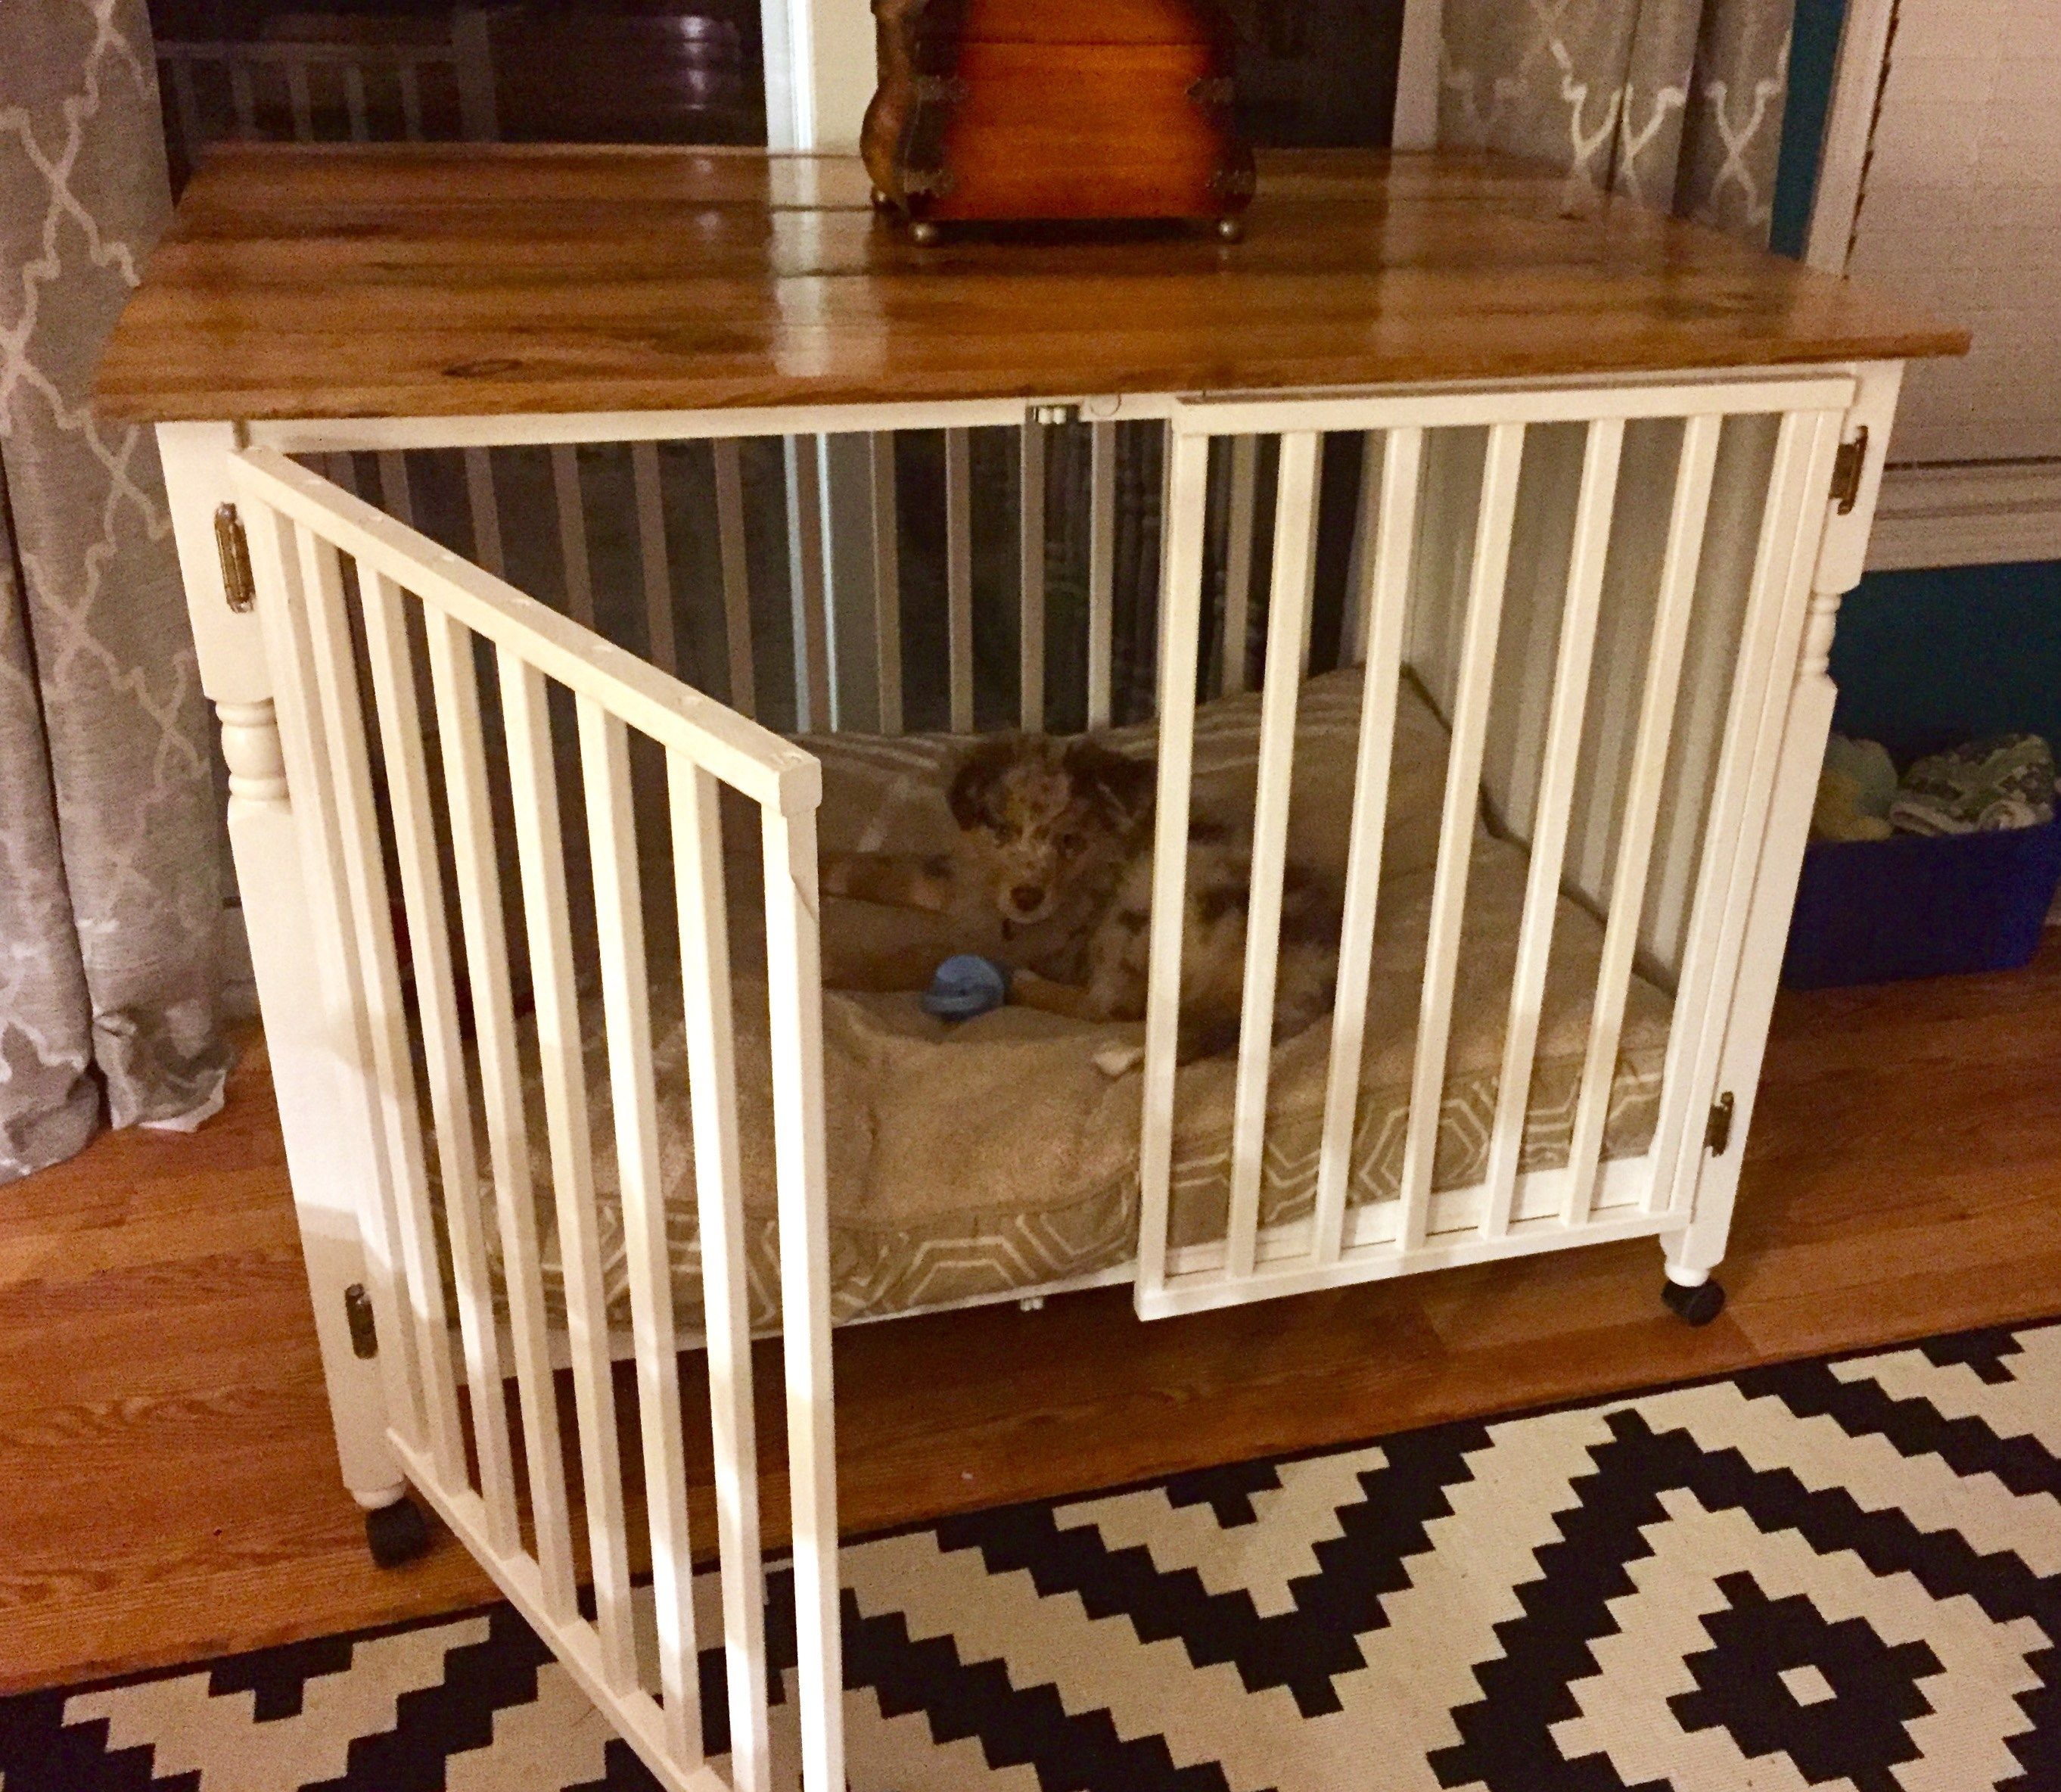 Repurposed crib to dog crate with barn board table top